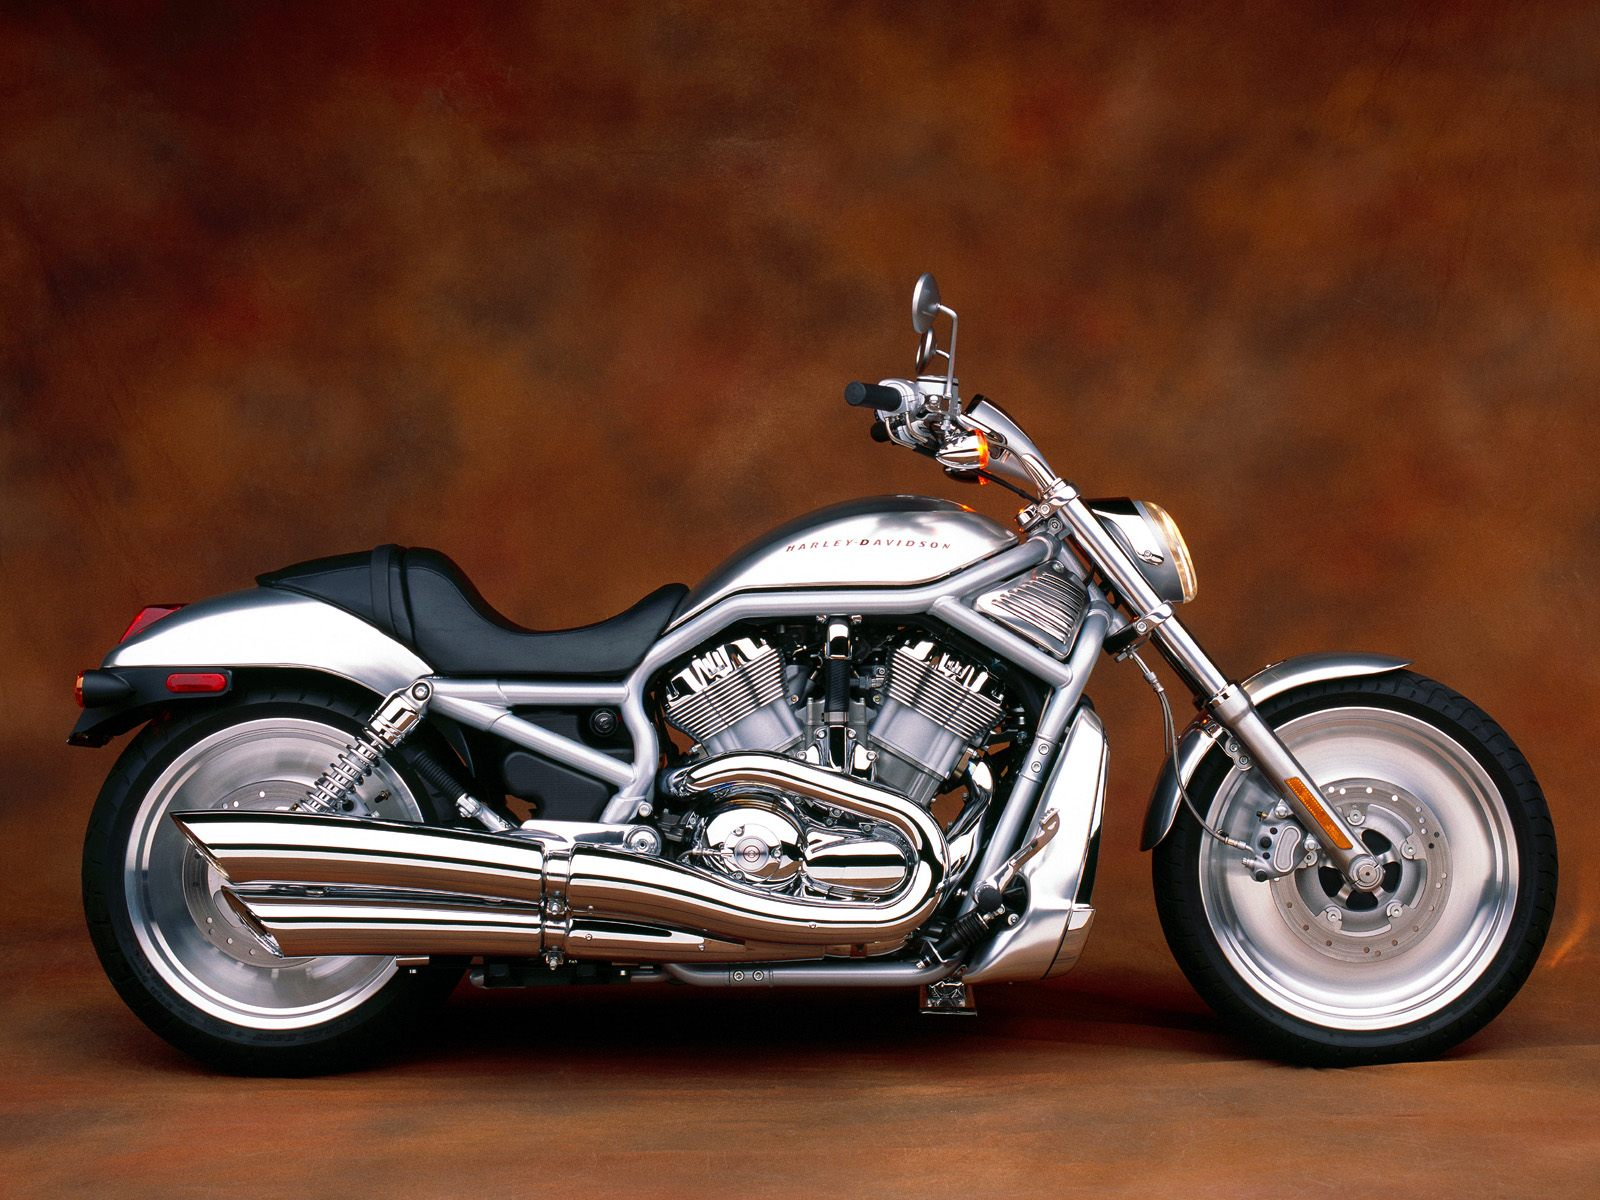 motorcycles motorcycle news and reviews harley davidson. Black Bedroom Furniture Sets. Home Design Ideas